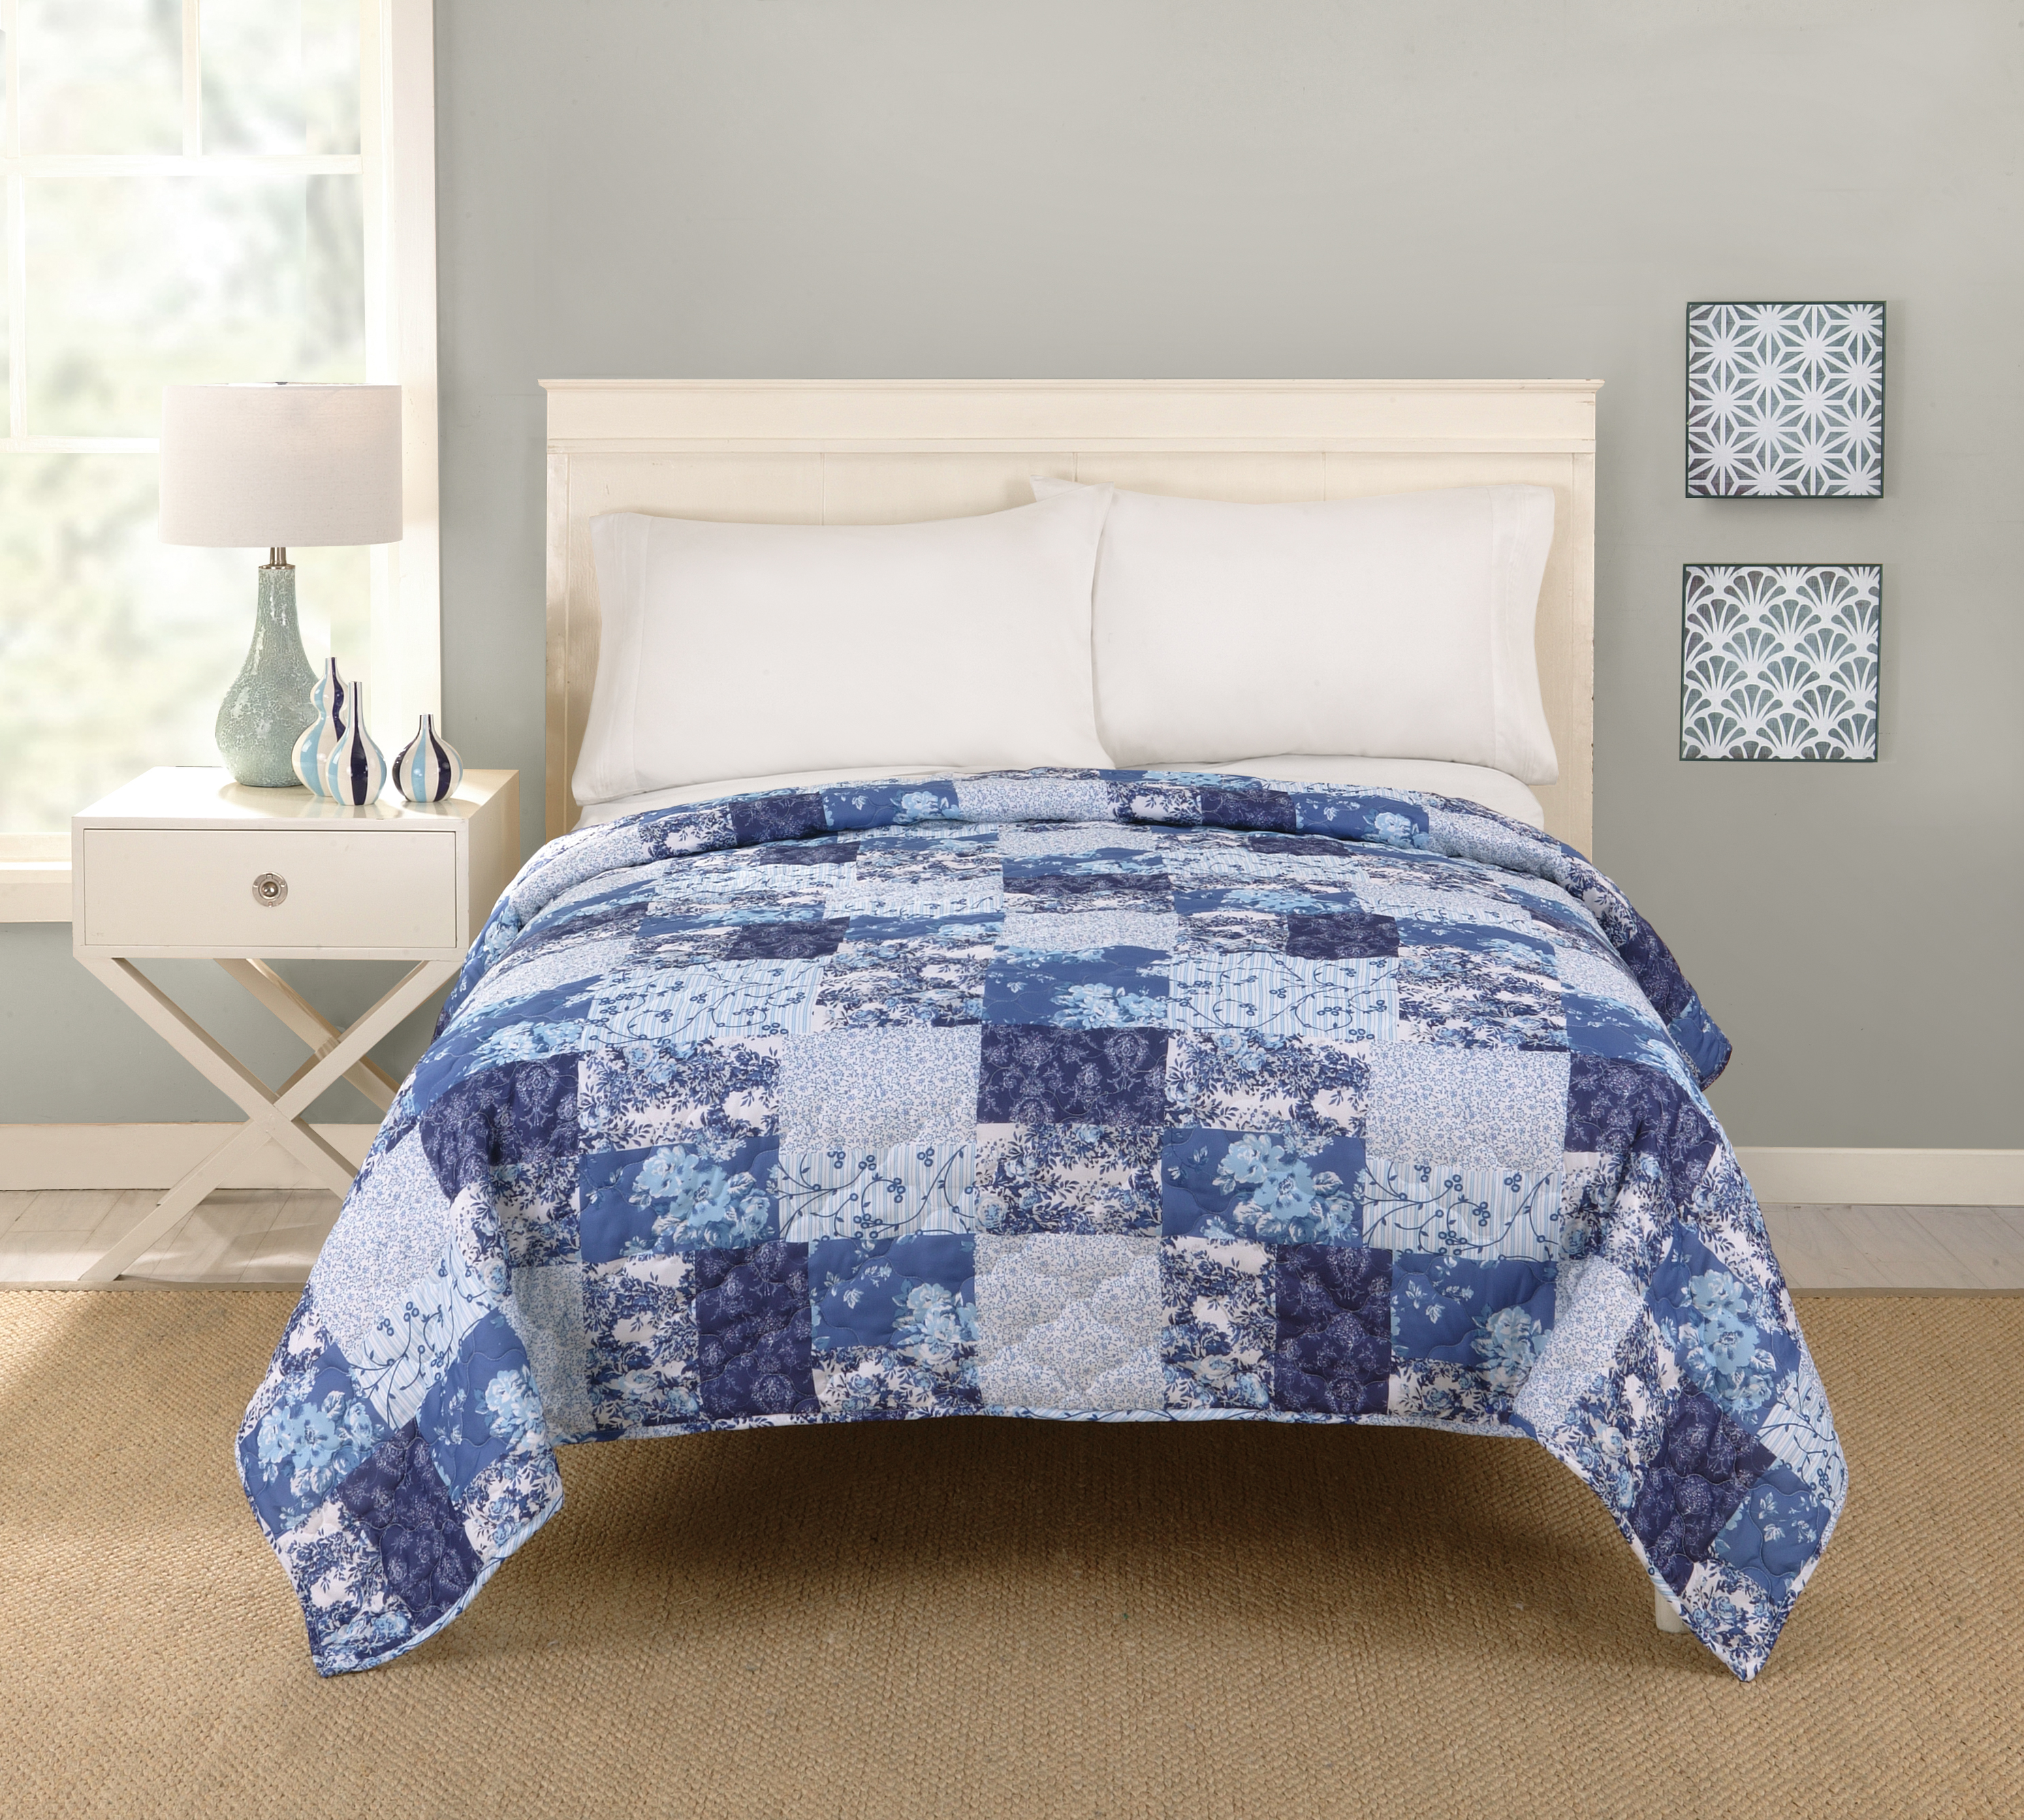 King Size Bed Throws Big Fab Find Patchwork Quilt Blue